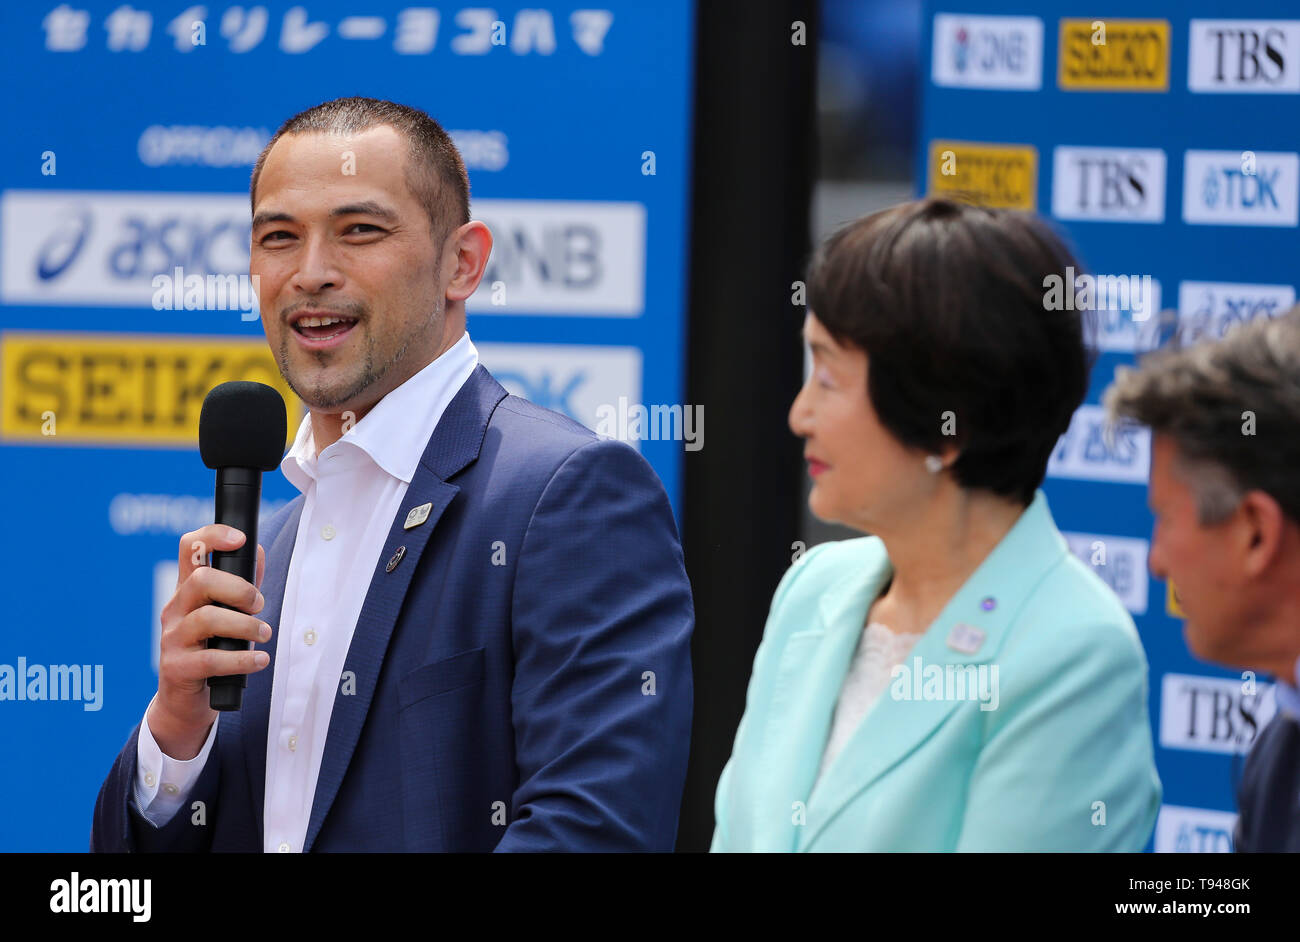 YOKOHAMA, JAPAN - MAY 10:  during the official press conference of the 2019 IAAF World Relay Championships at the Nissan Stadium on May 10, 2019 in Yokohama, Japan. (Photo by Roger Sedres for the IAAF) - Stock Image